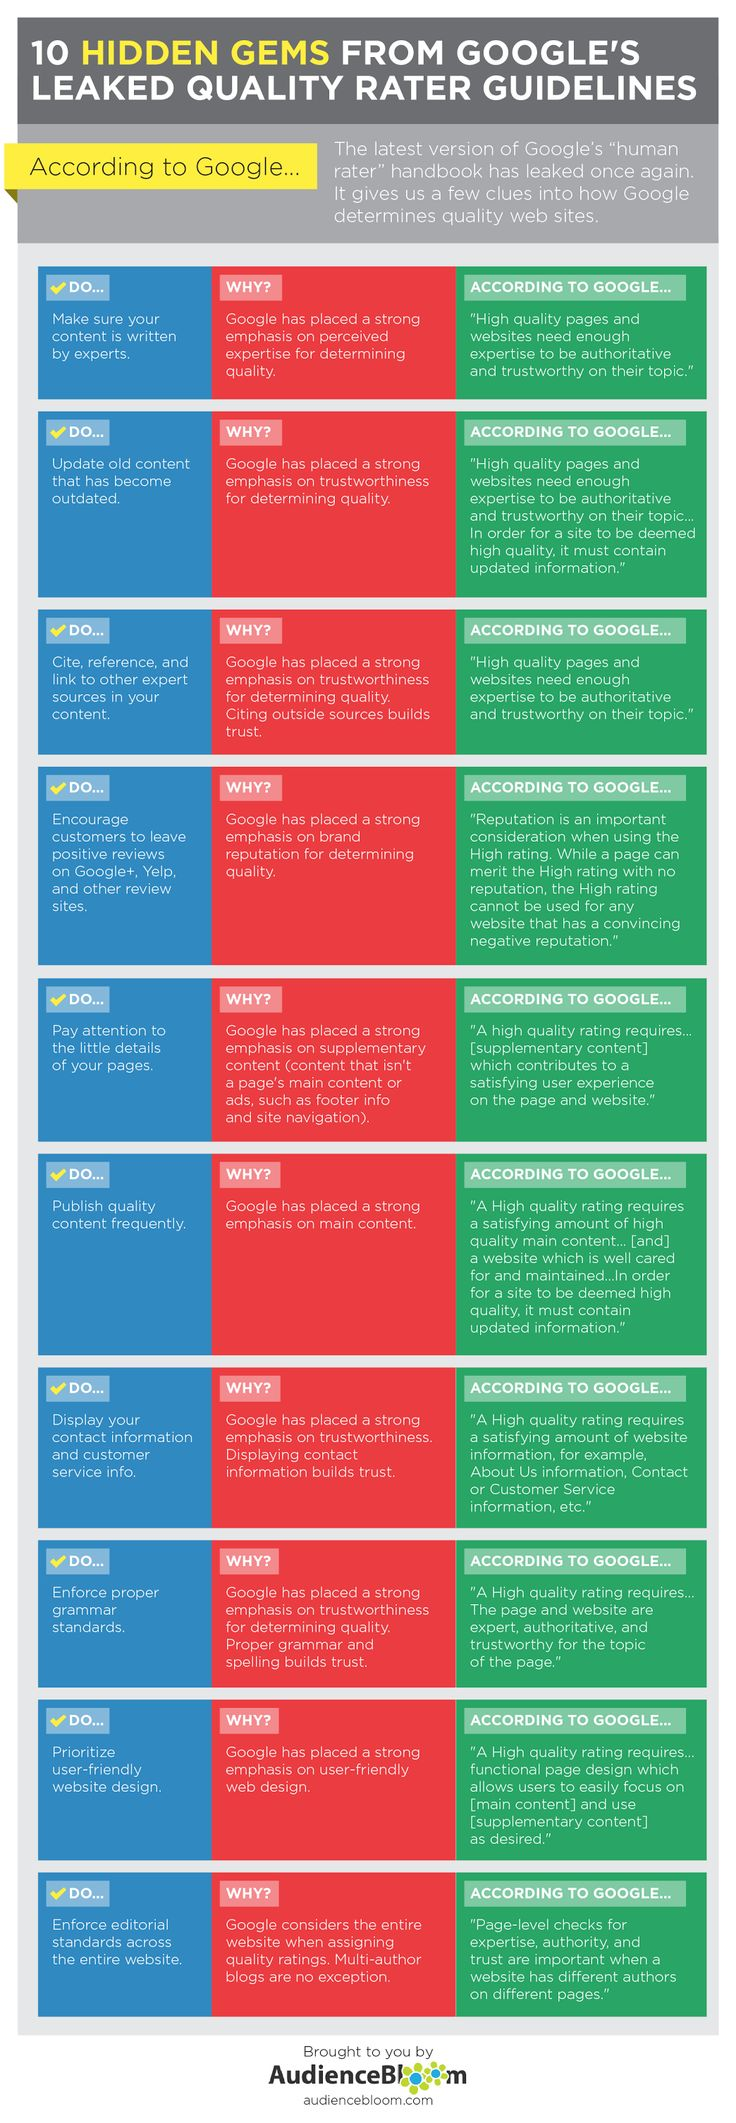 10 Hidden Gems from Google's Leaked Quality Rater Guidelines - #infographic #SEO #Google